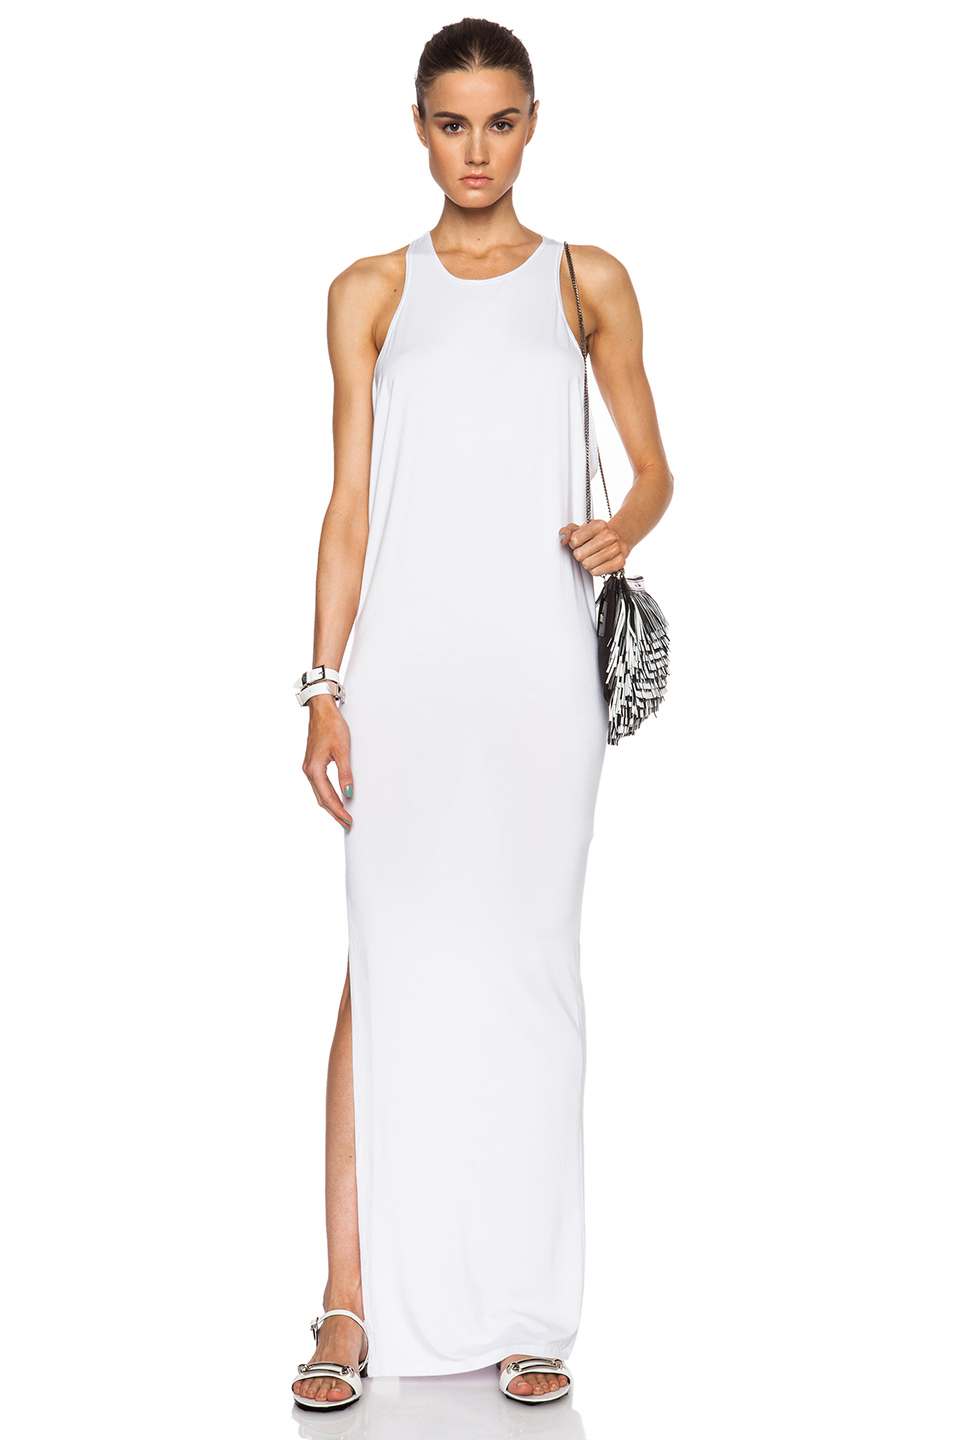 04bfdead64 Mikoh Swimwear High Neck Maxi Dress With Side Slit in White - Lyst